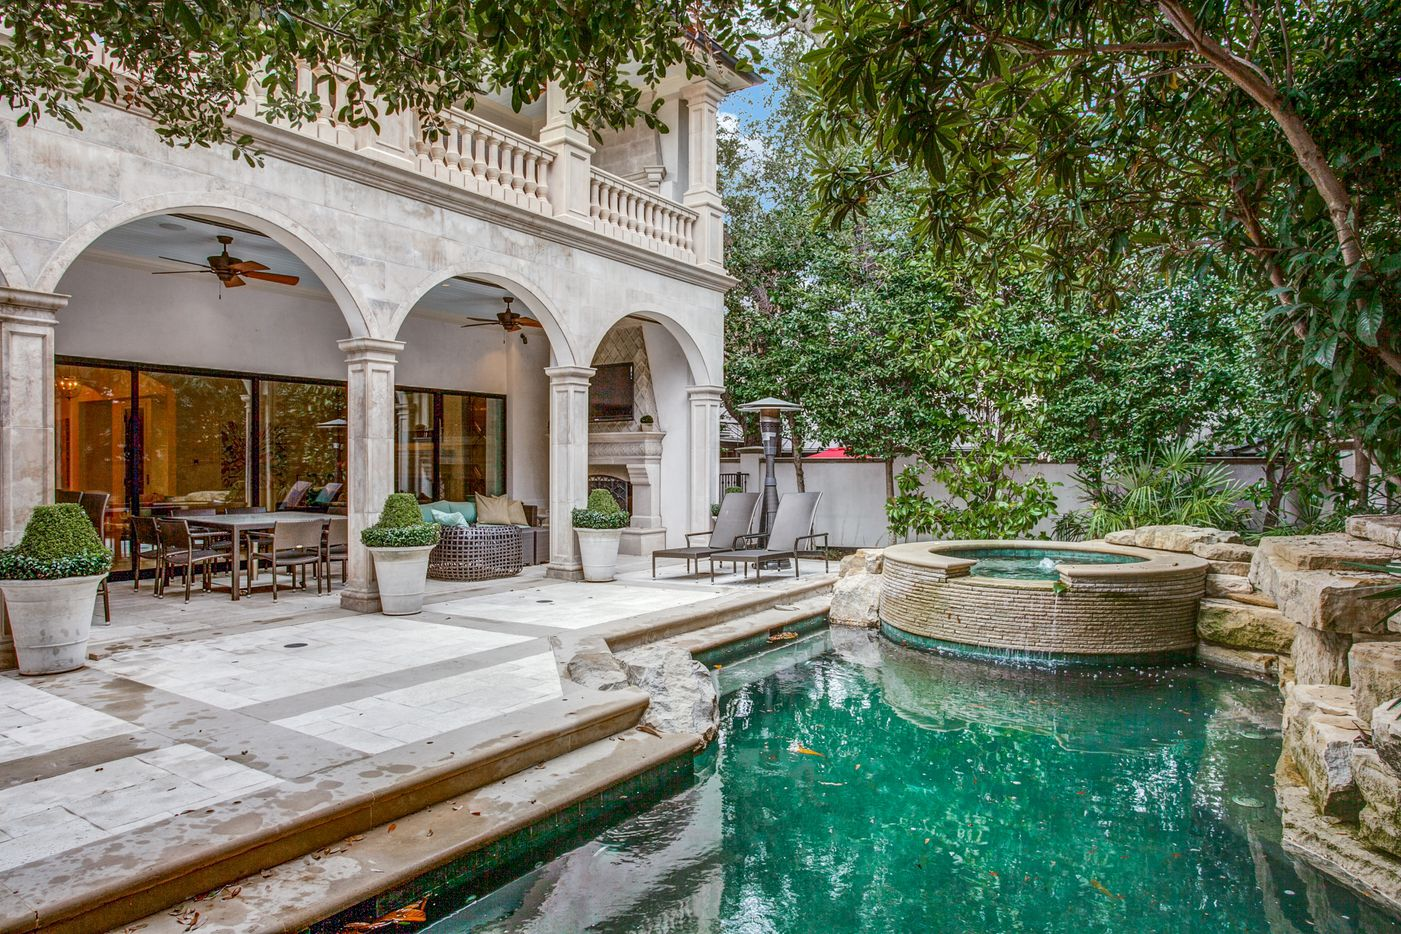 A look at the backyard of the Dallas home Kameron Westcott is selling.